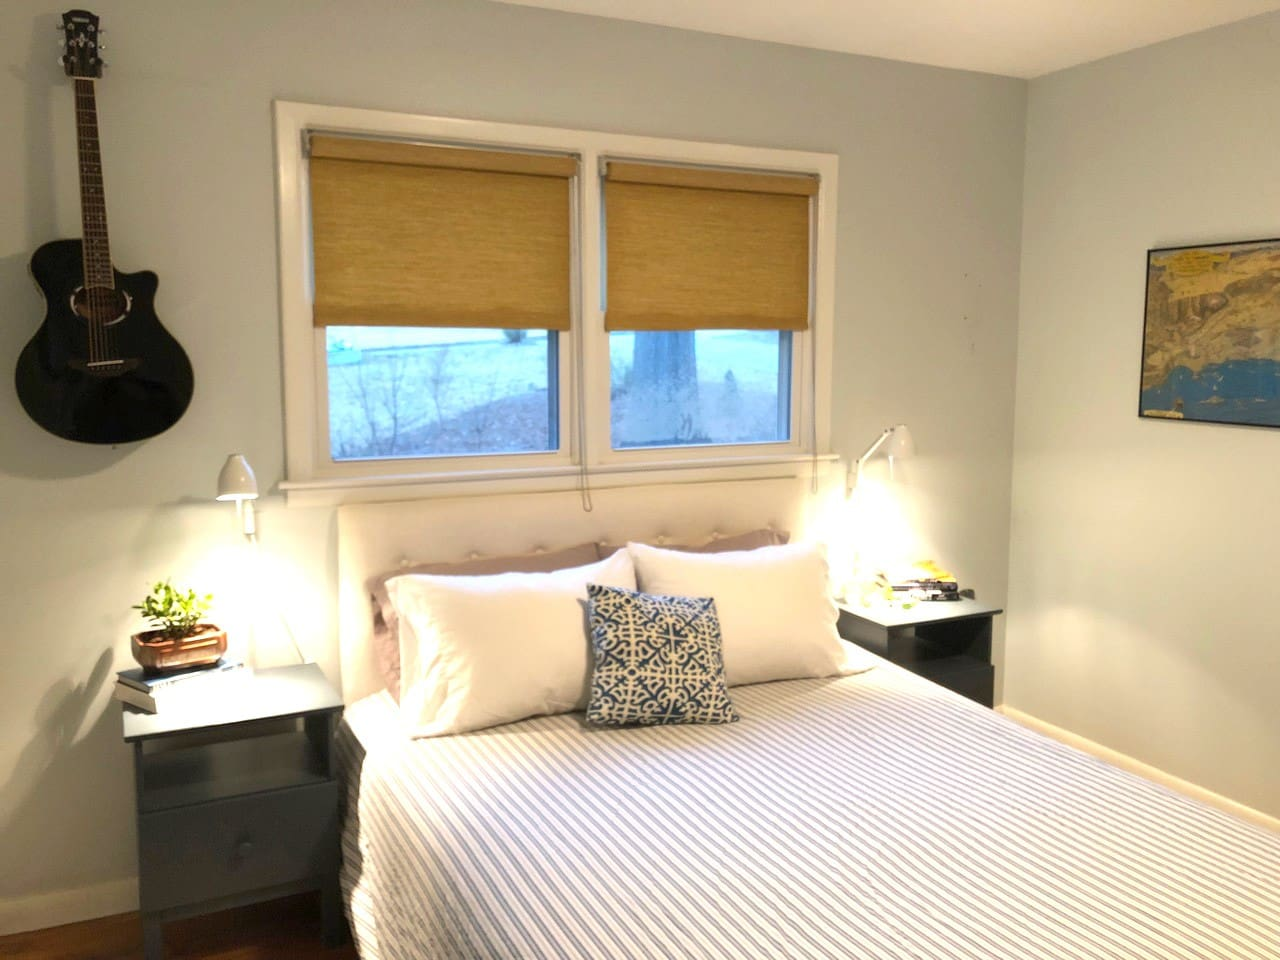 The master bedroom has a comfortable queen bed, bathroom with shower and a Yamaha guitar in addition to a Yamaha sound system for your playing and listening enjoyment!